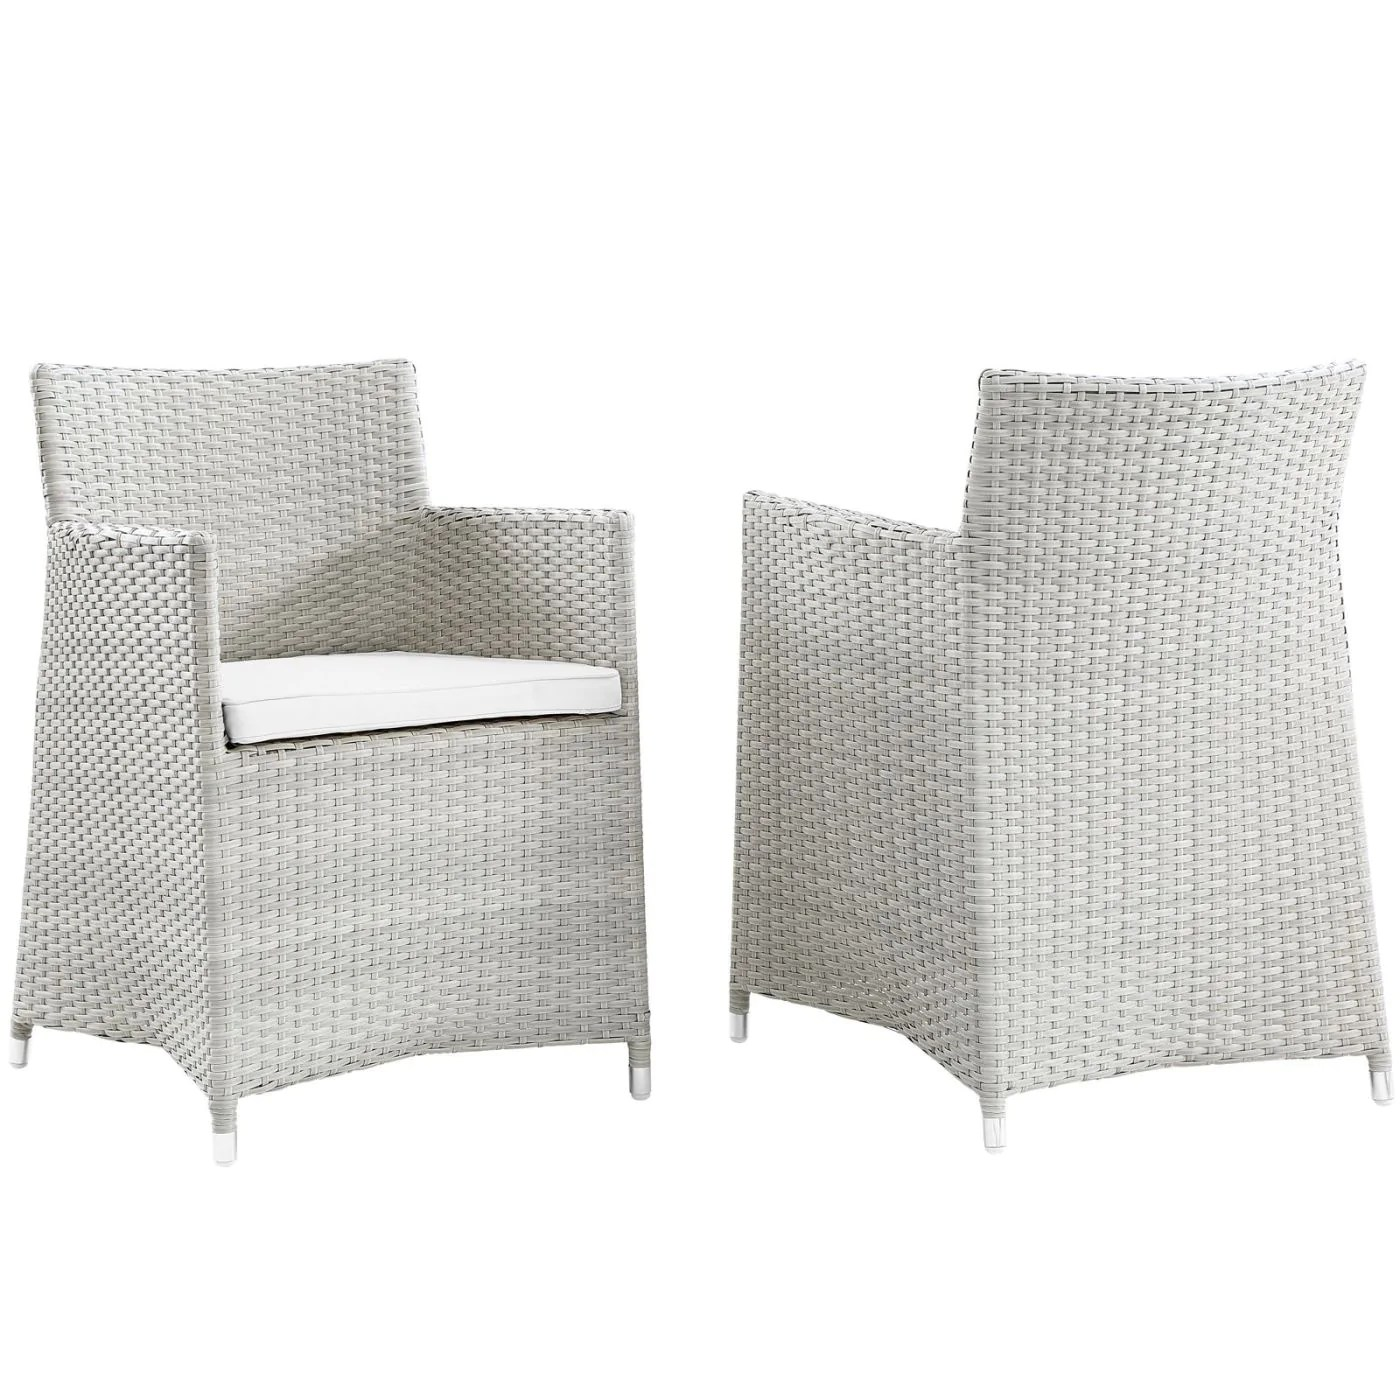 Wicker Outdoor Dining Chairs Modway Outdoor Dining Chairs On Sale Eei 1738 Gry Whi Set Junction Armchair Outdoor Patio Wicker Set Of 2 Only Only 403 75 At Contemporary Furniture